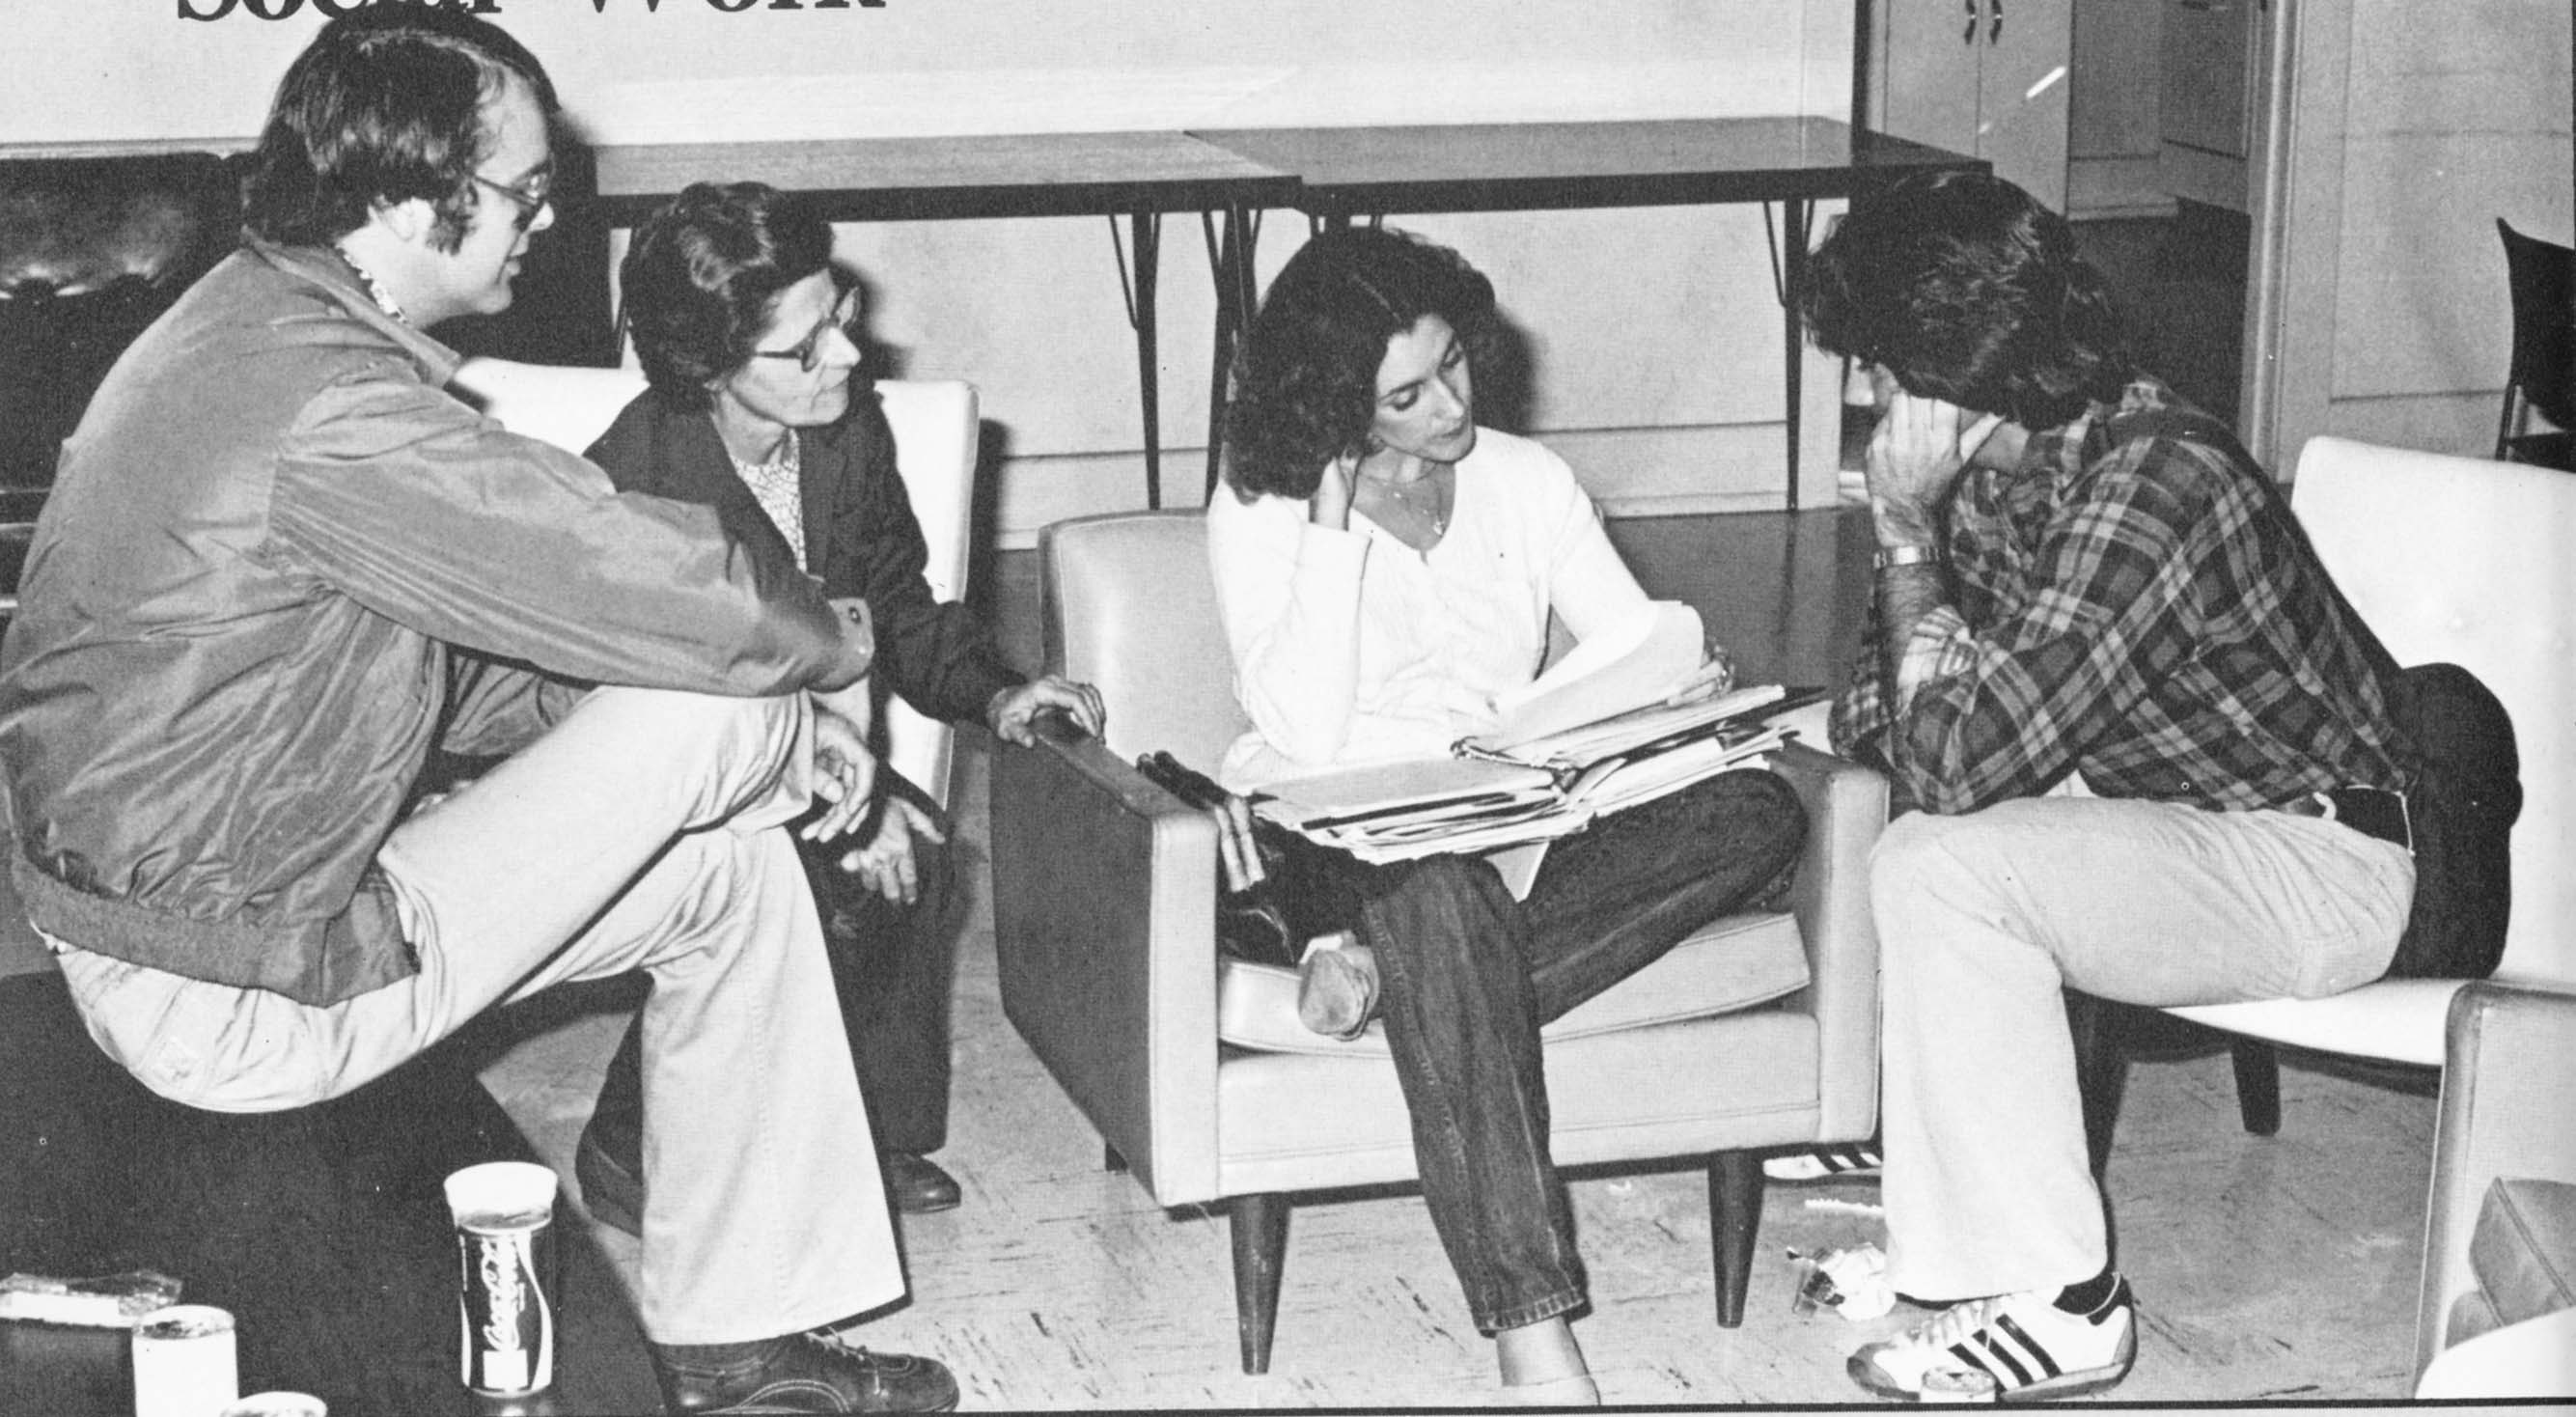 Old black and white photo of people sitting and looking through a binder